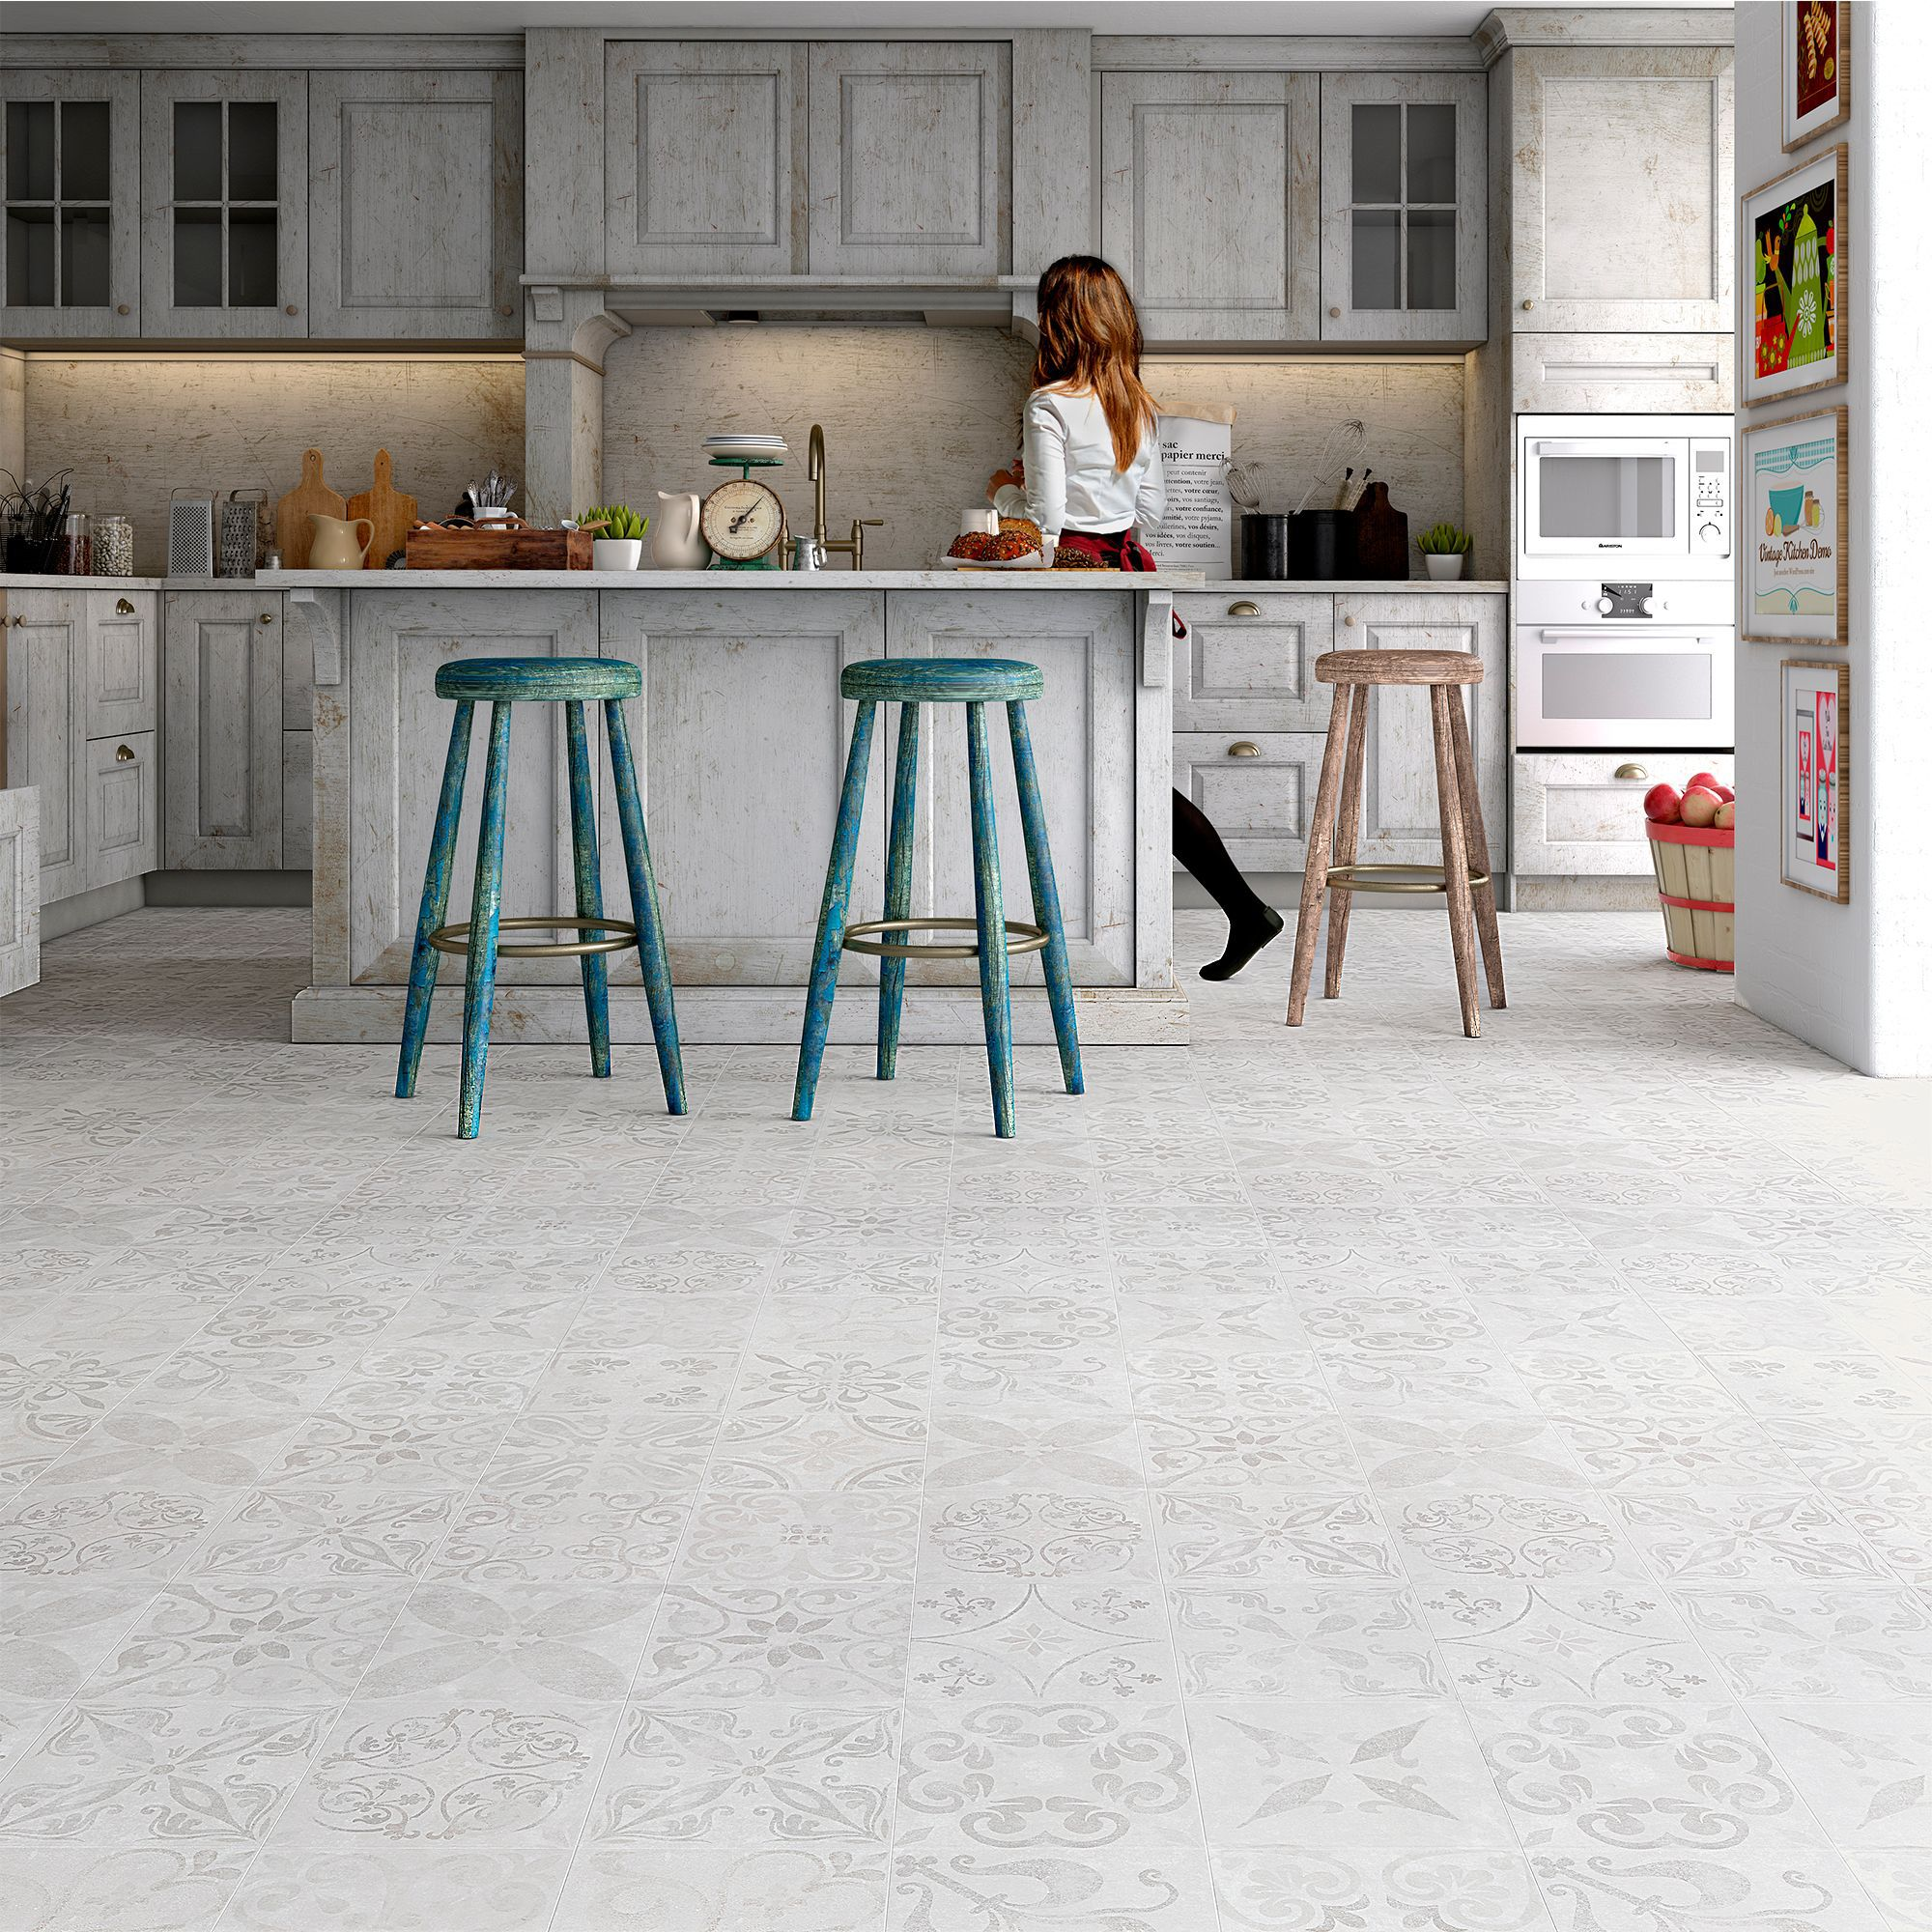 Tile Effect Laminate Flooring tile effect laminate flooring has all the properties of classic laminate flooring plus an extra anti humidity cover so it is good to use in kitchens and Leggiero Beige Tile Effect Laminate Flooring 186 M Pack Departments Diy At Bq